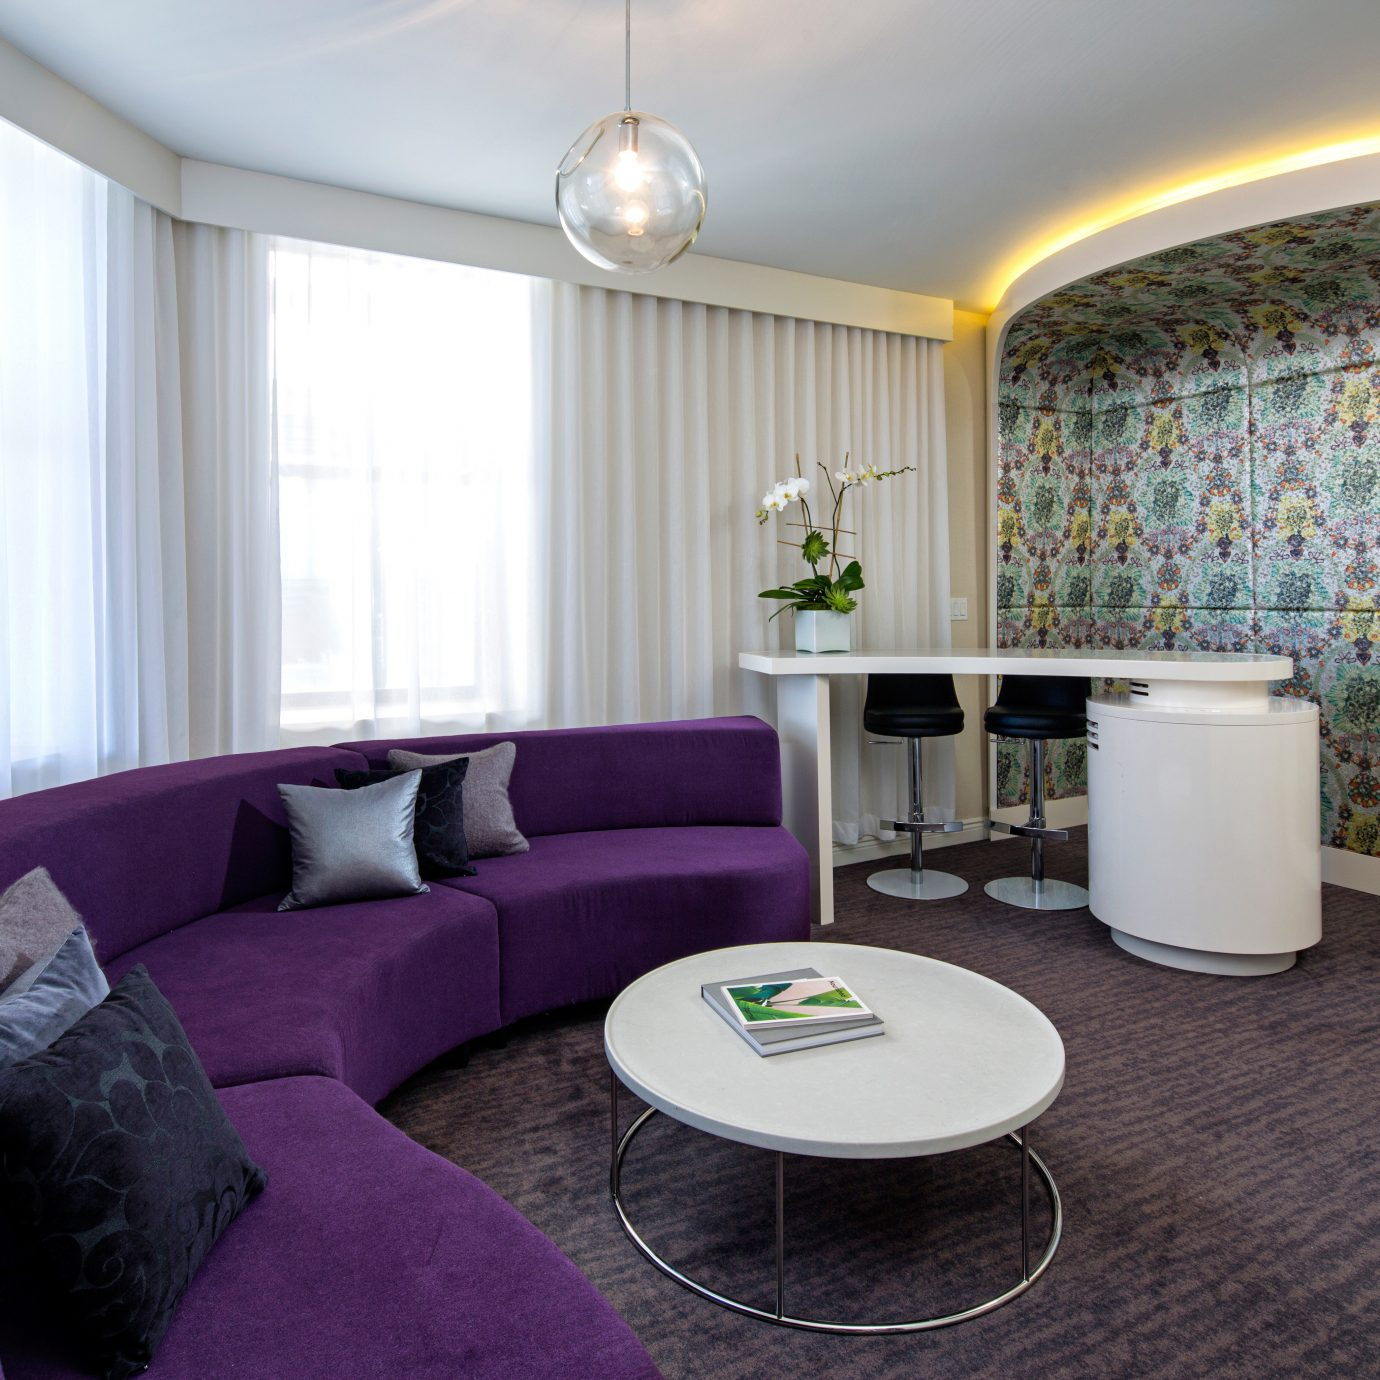 City Hip Suite property living room home condominium Bedroom colored